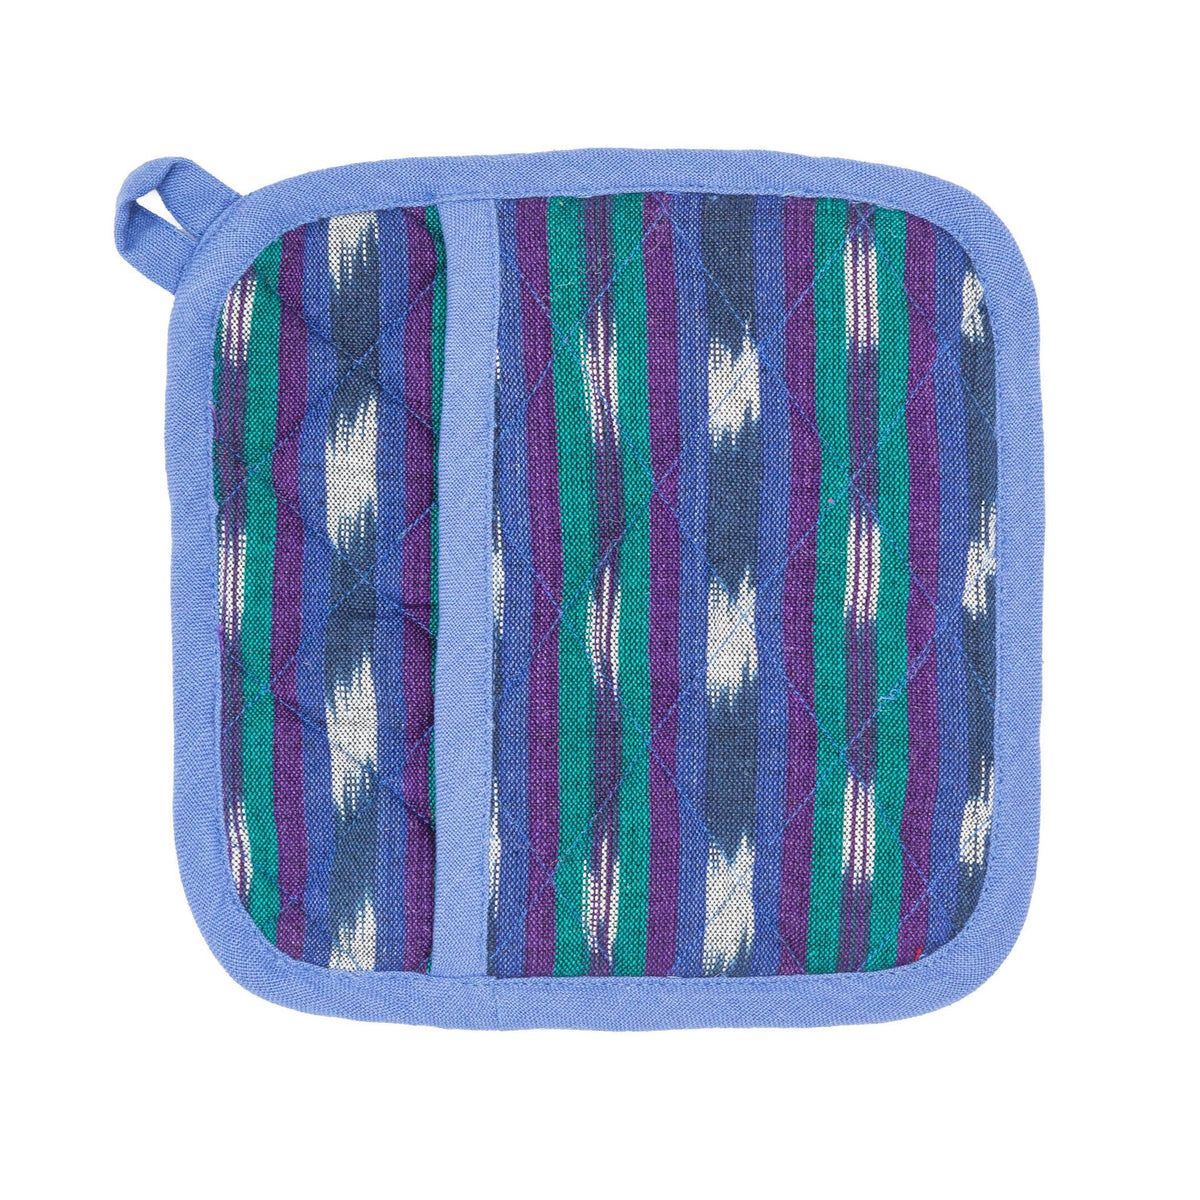 Pocket Pot Holder - Blue